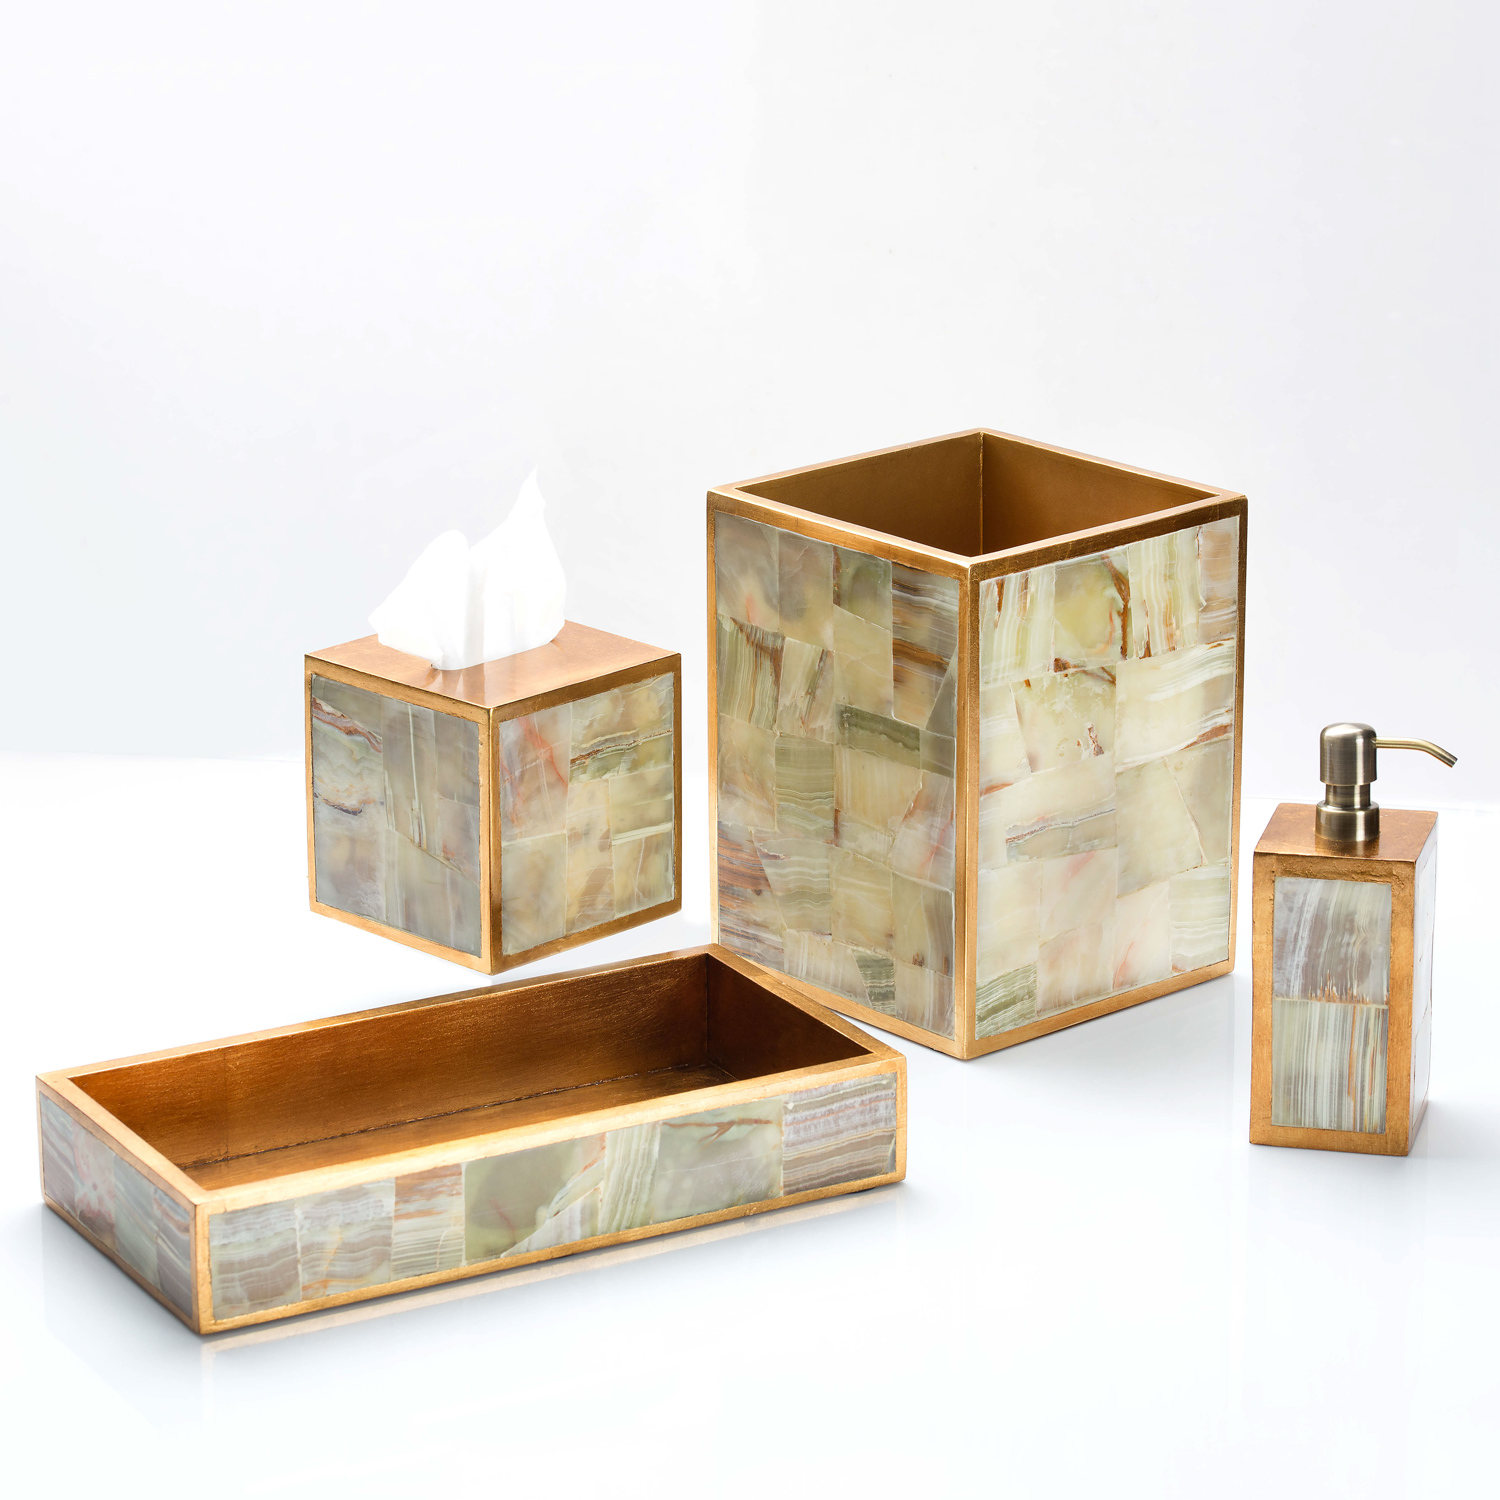 Couture Lamps Boxes 4.jpg